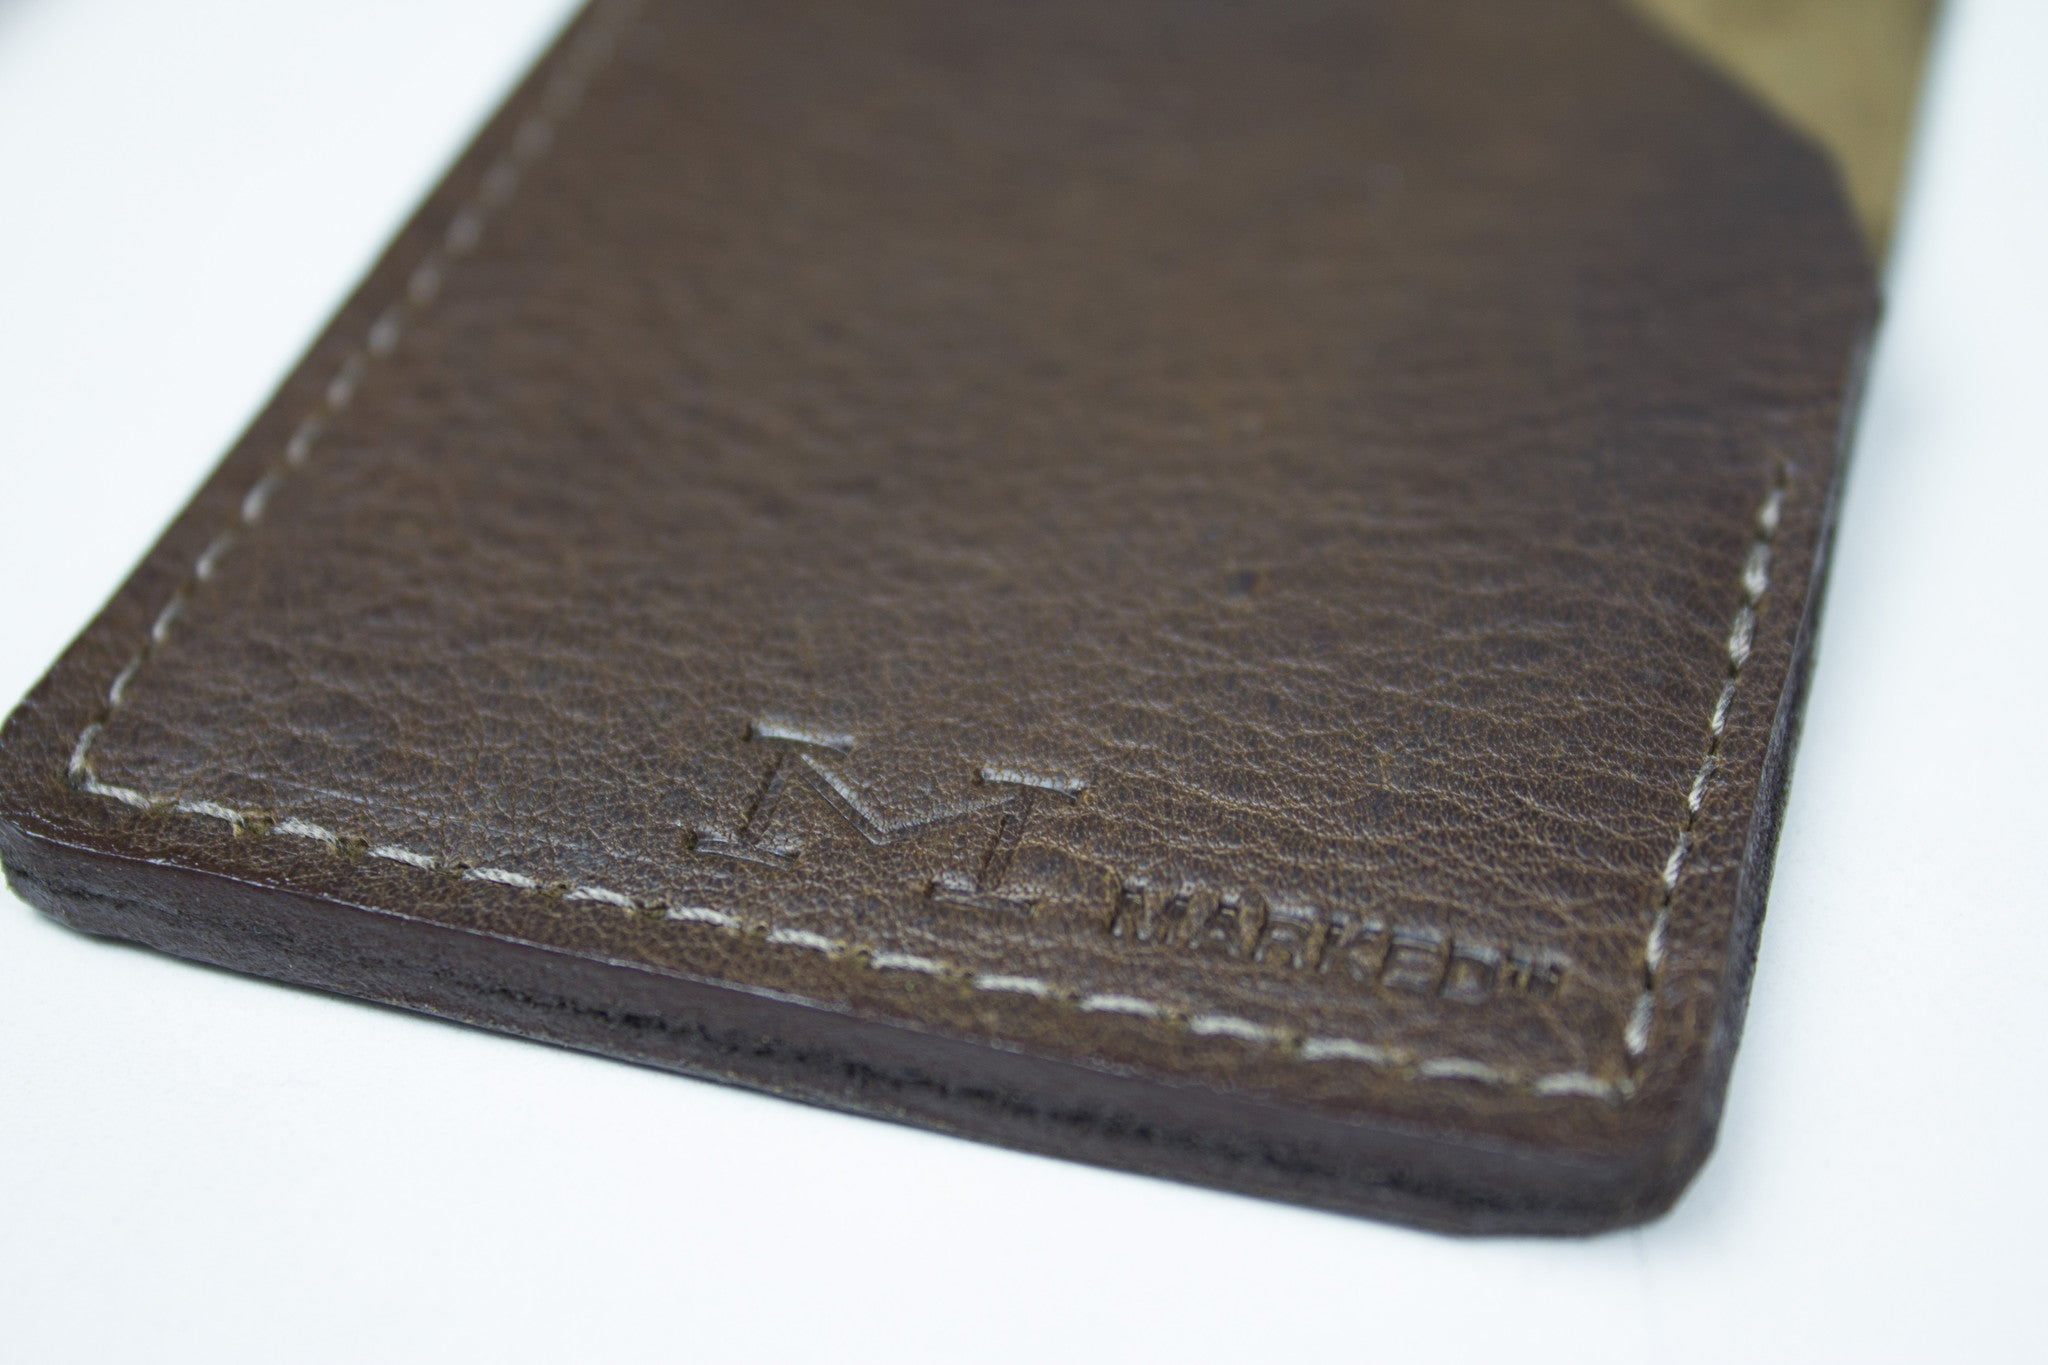 Close up of brown leather card holder